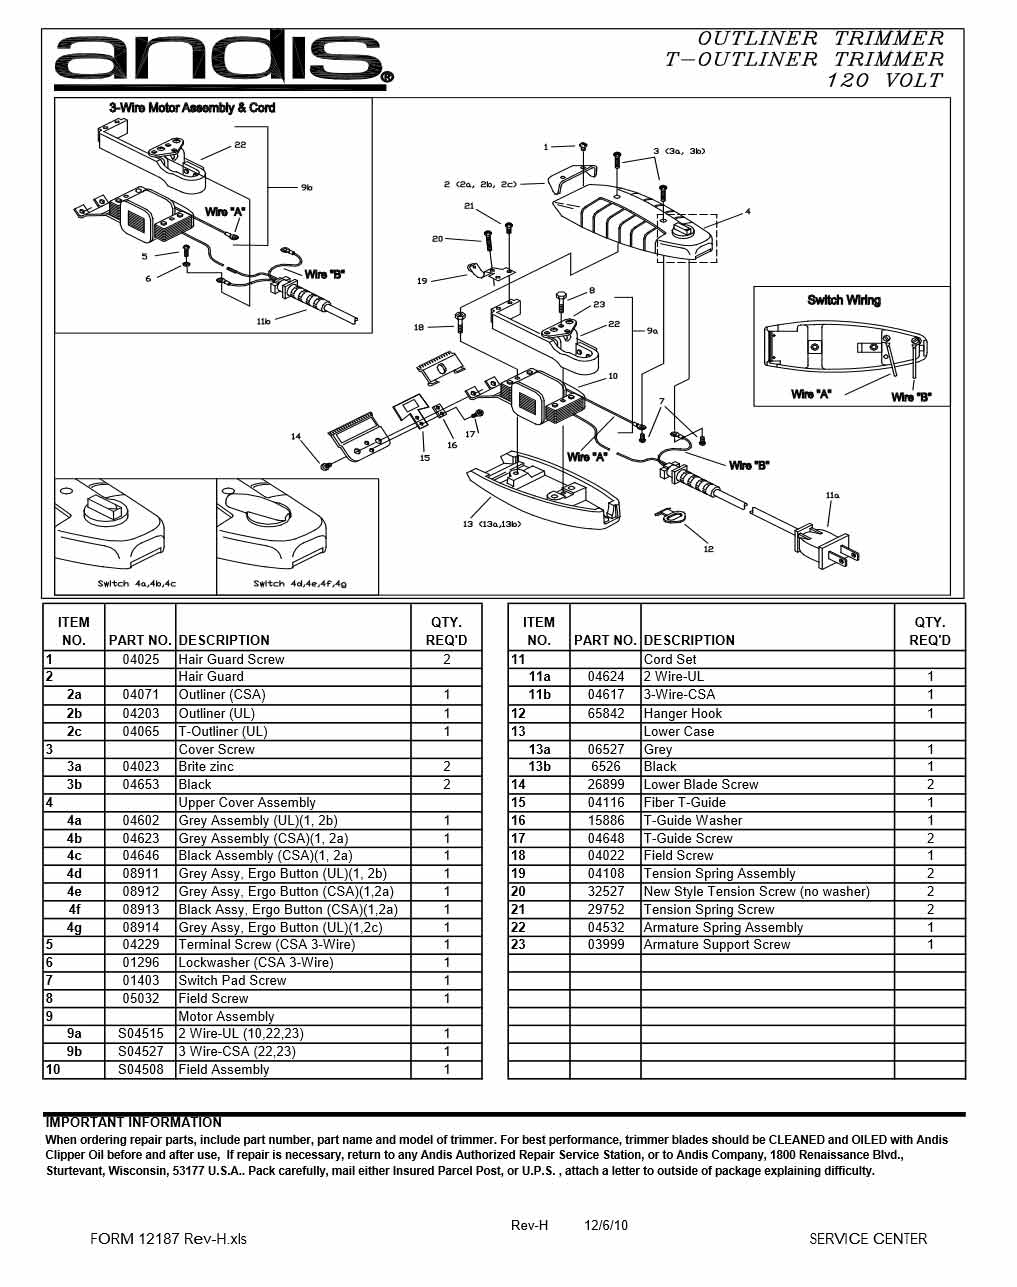 parts of the nose diagram dc to ac inverter schematic andis outliner/ t-outliner lower blade screw #26899 - barber depot